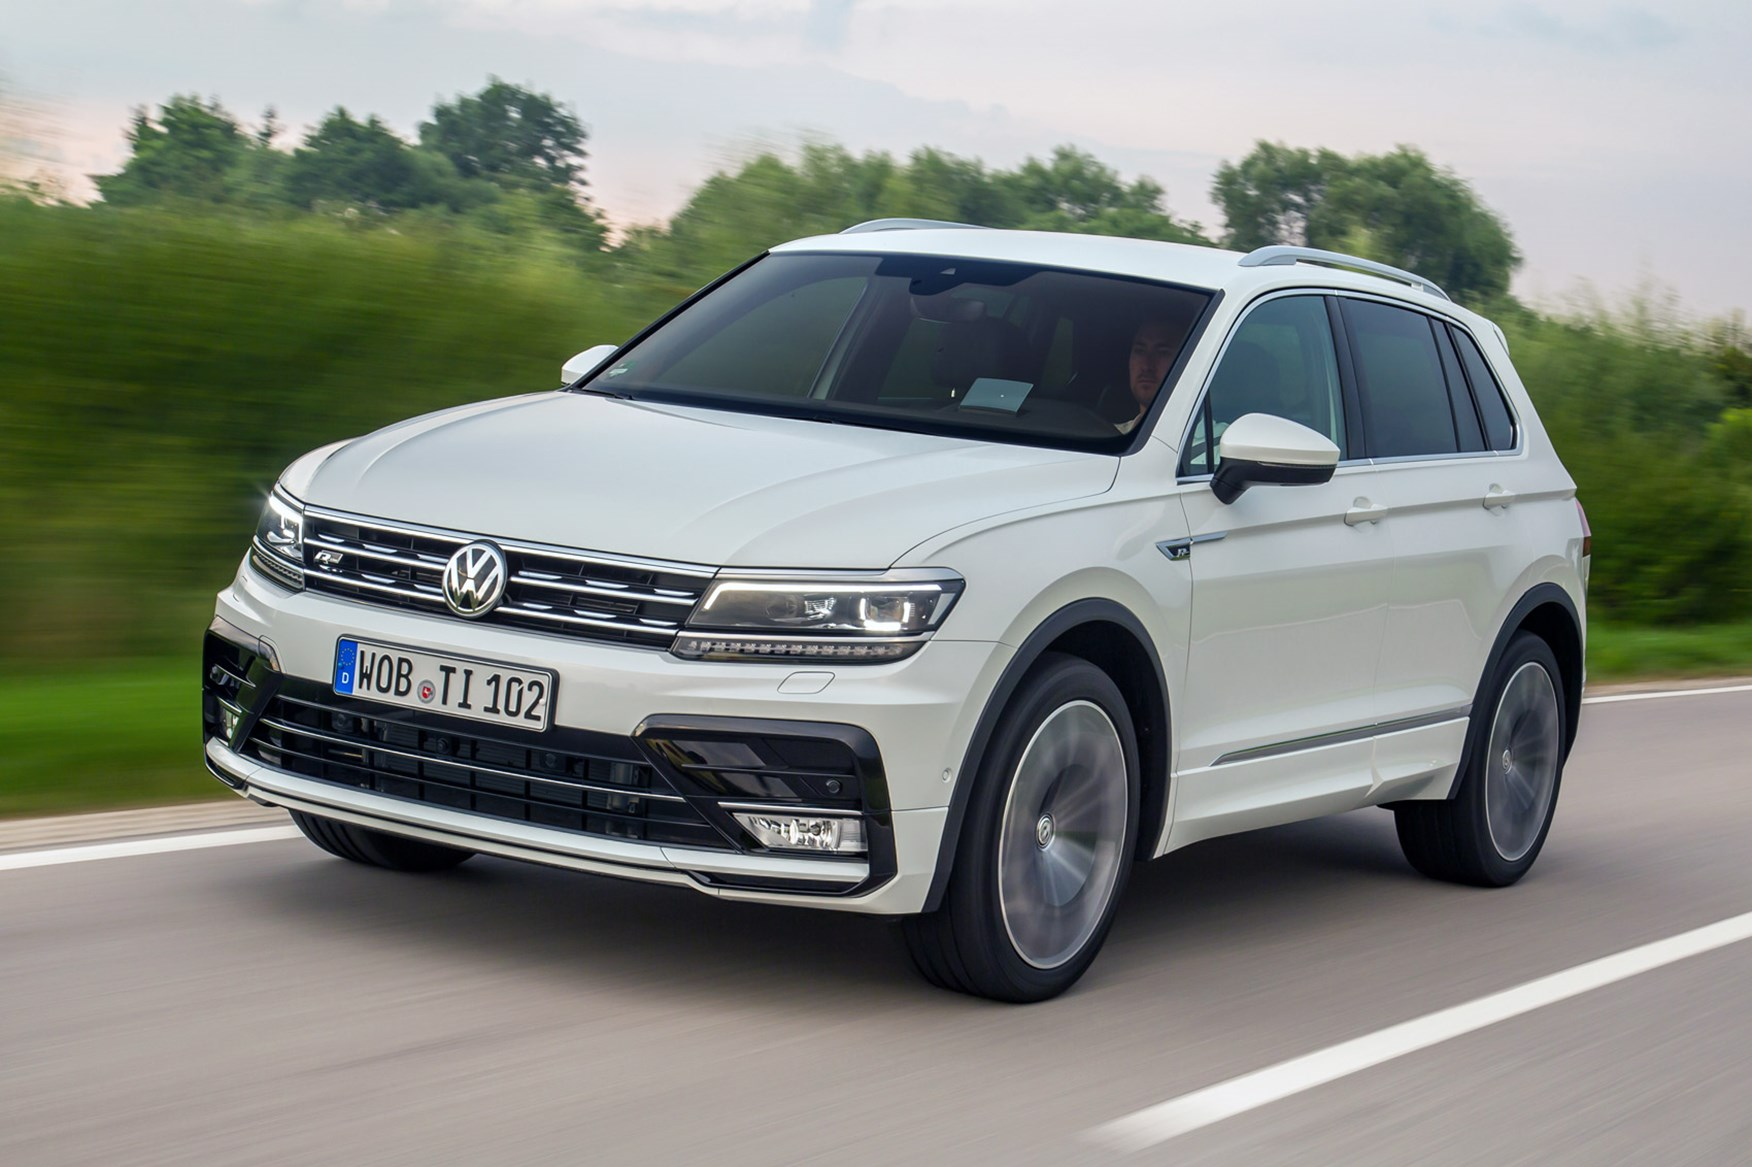 Vw Tiguan 2 0 Bitdi 240 4motion R Line 2016 Review By